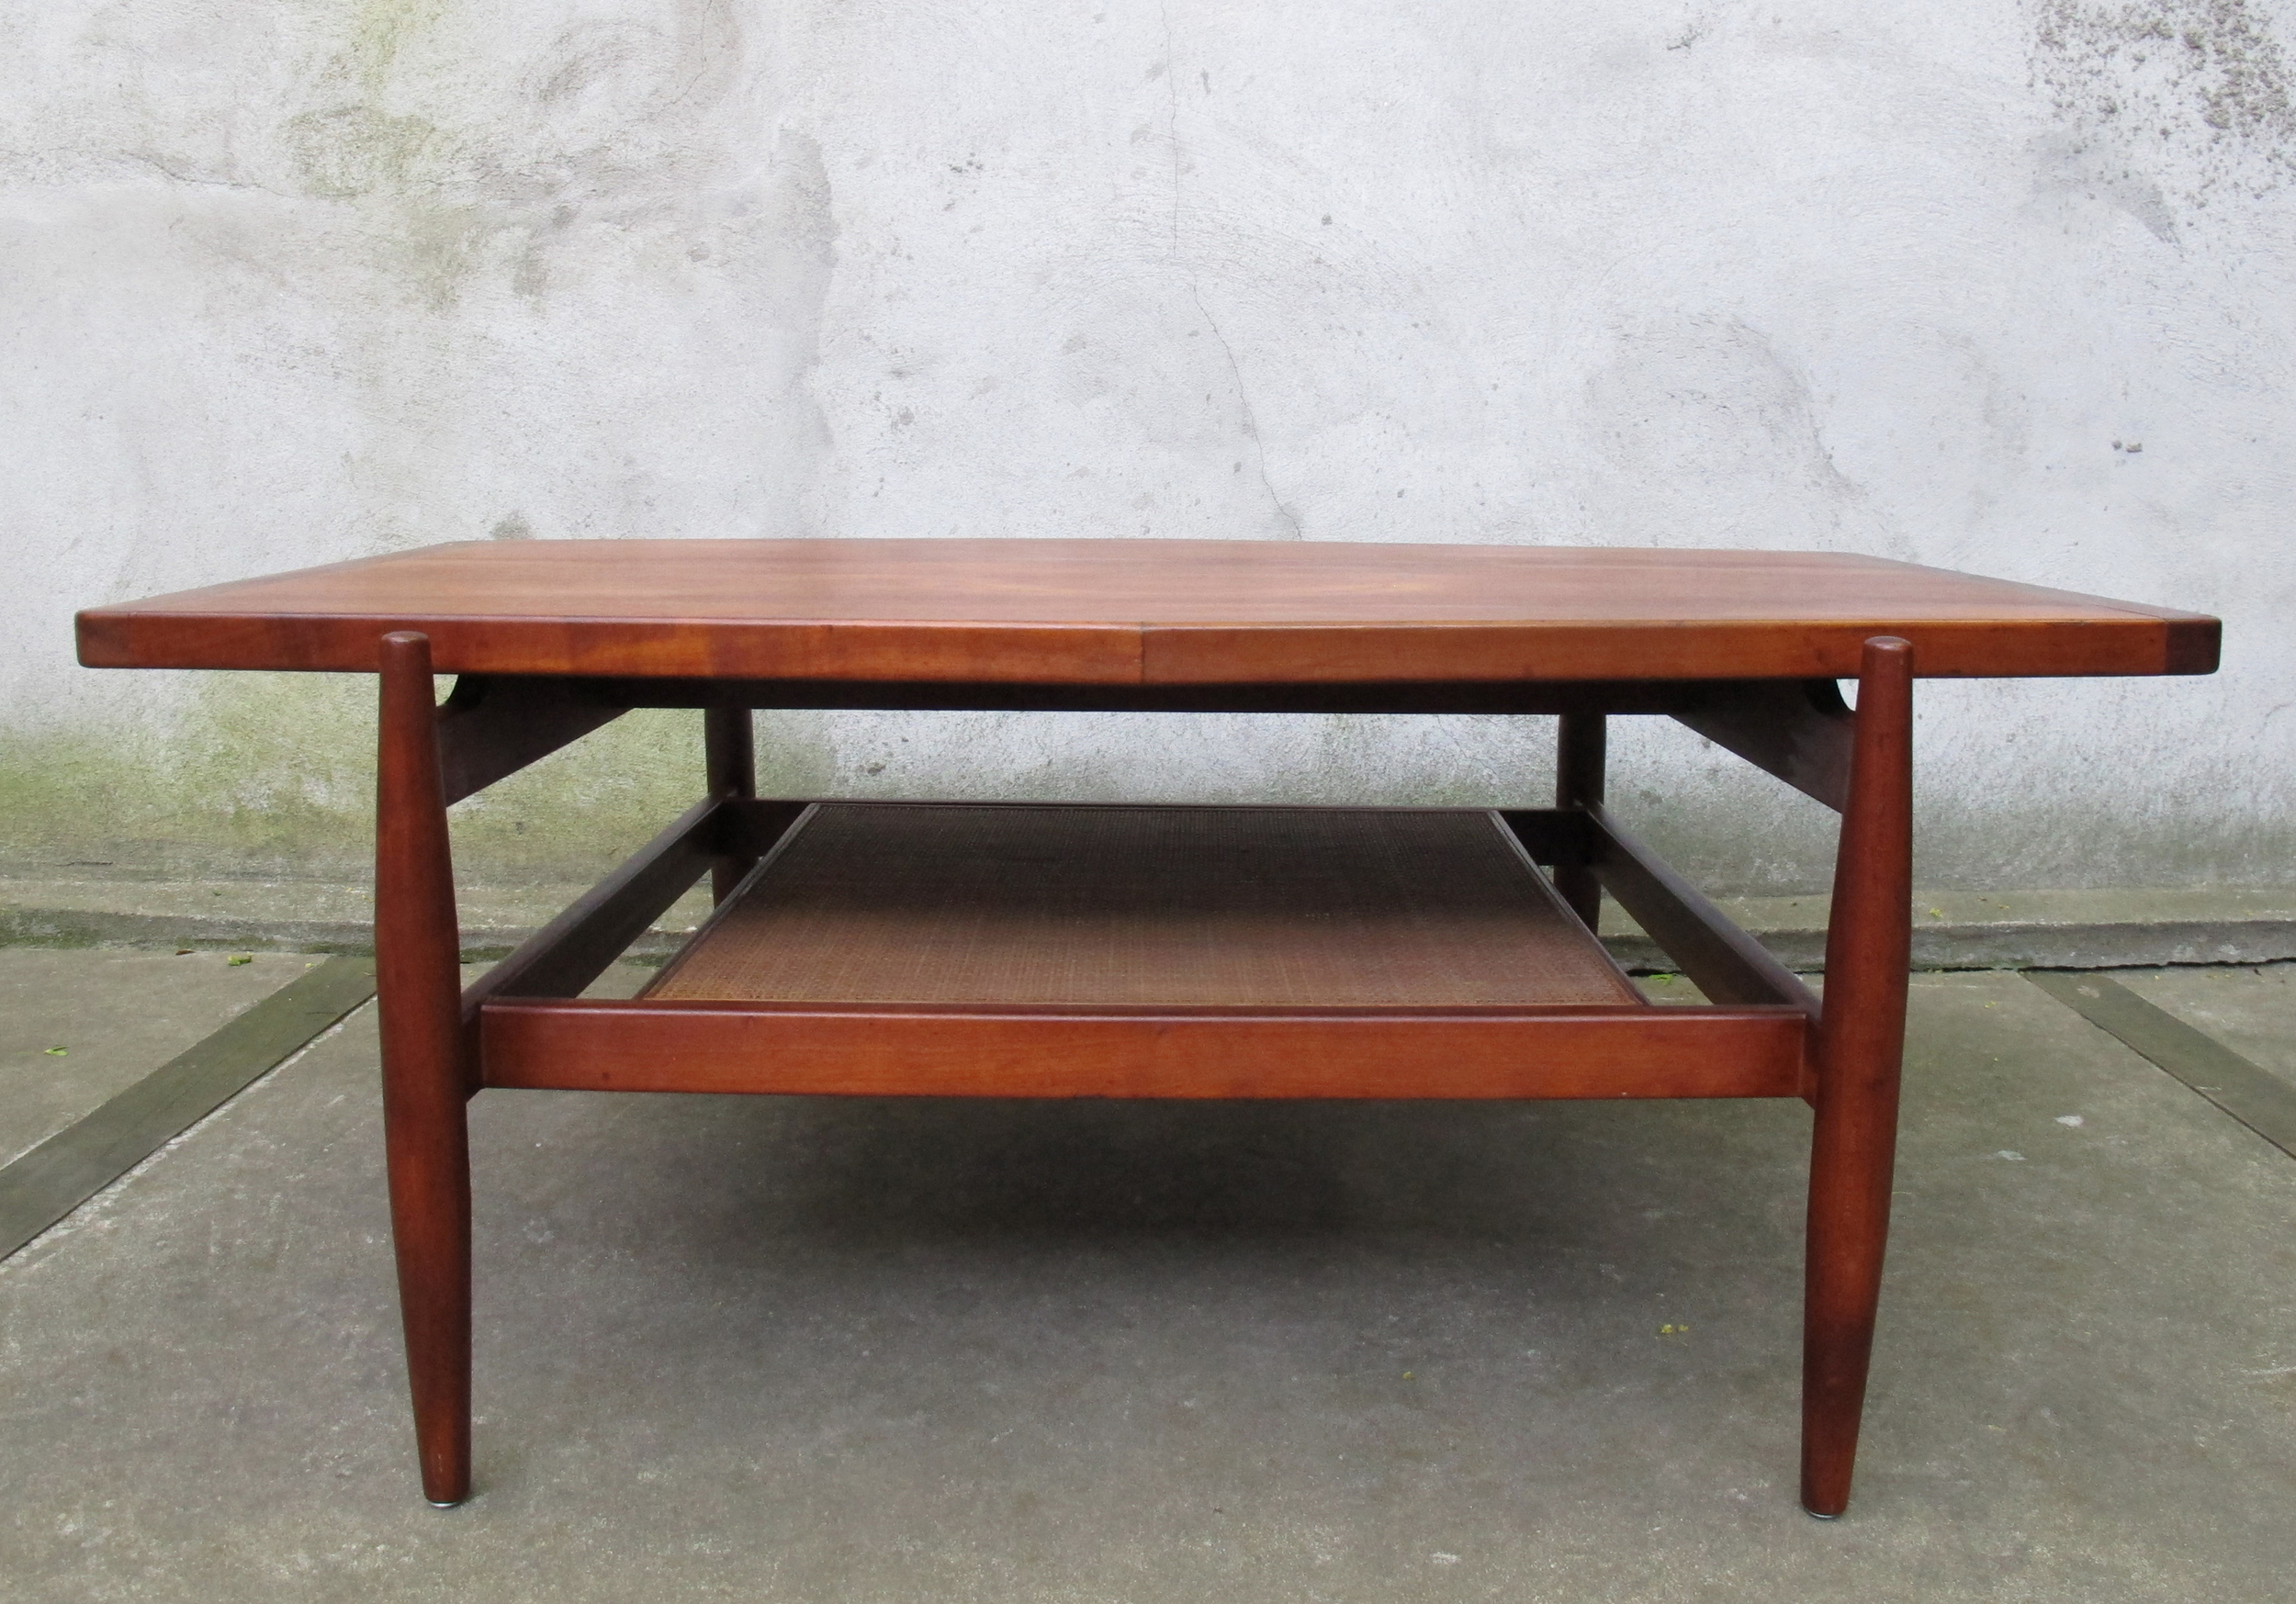 MID CENTURY WALNUT & CANE COFFEE TABLE BY JENS RISOM